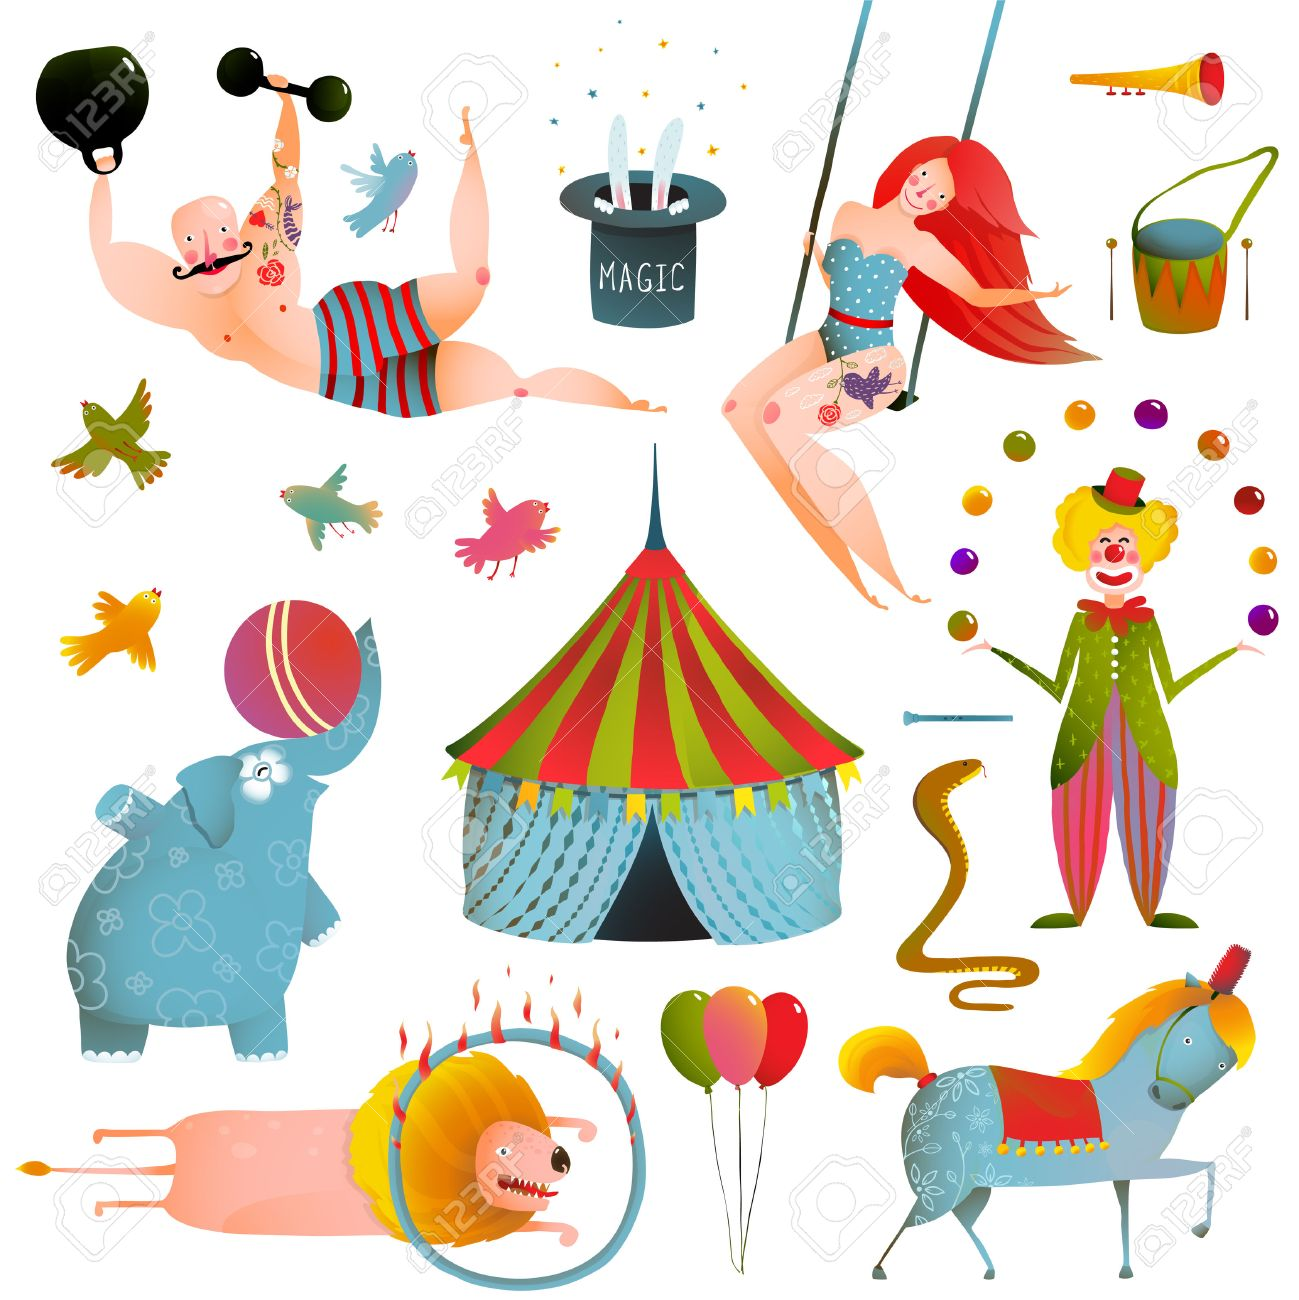 Circus Carnival Show Clip Art Vintage Collection Fun And Cute Performance With Animals Clown